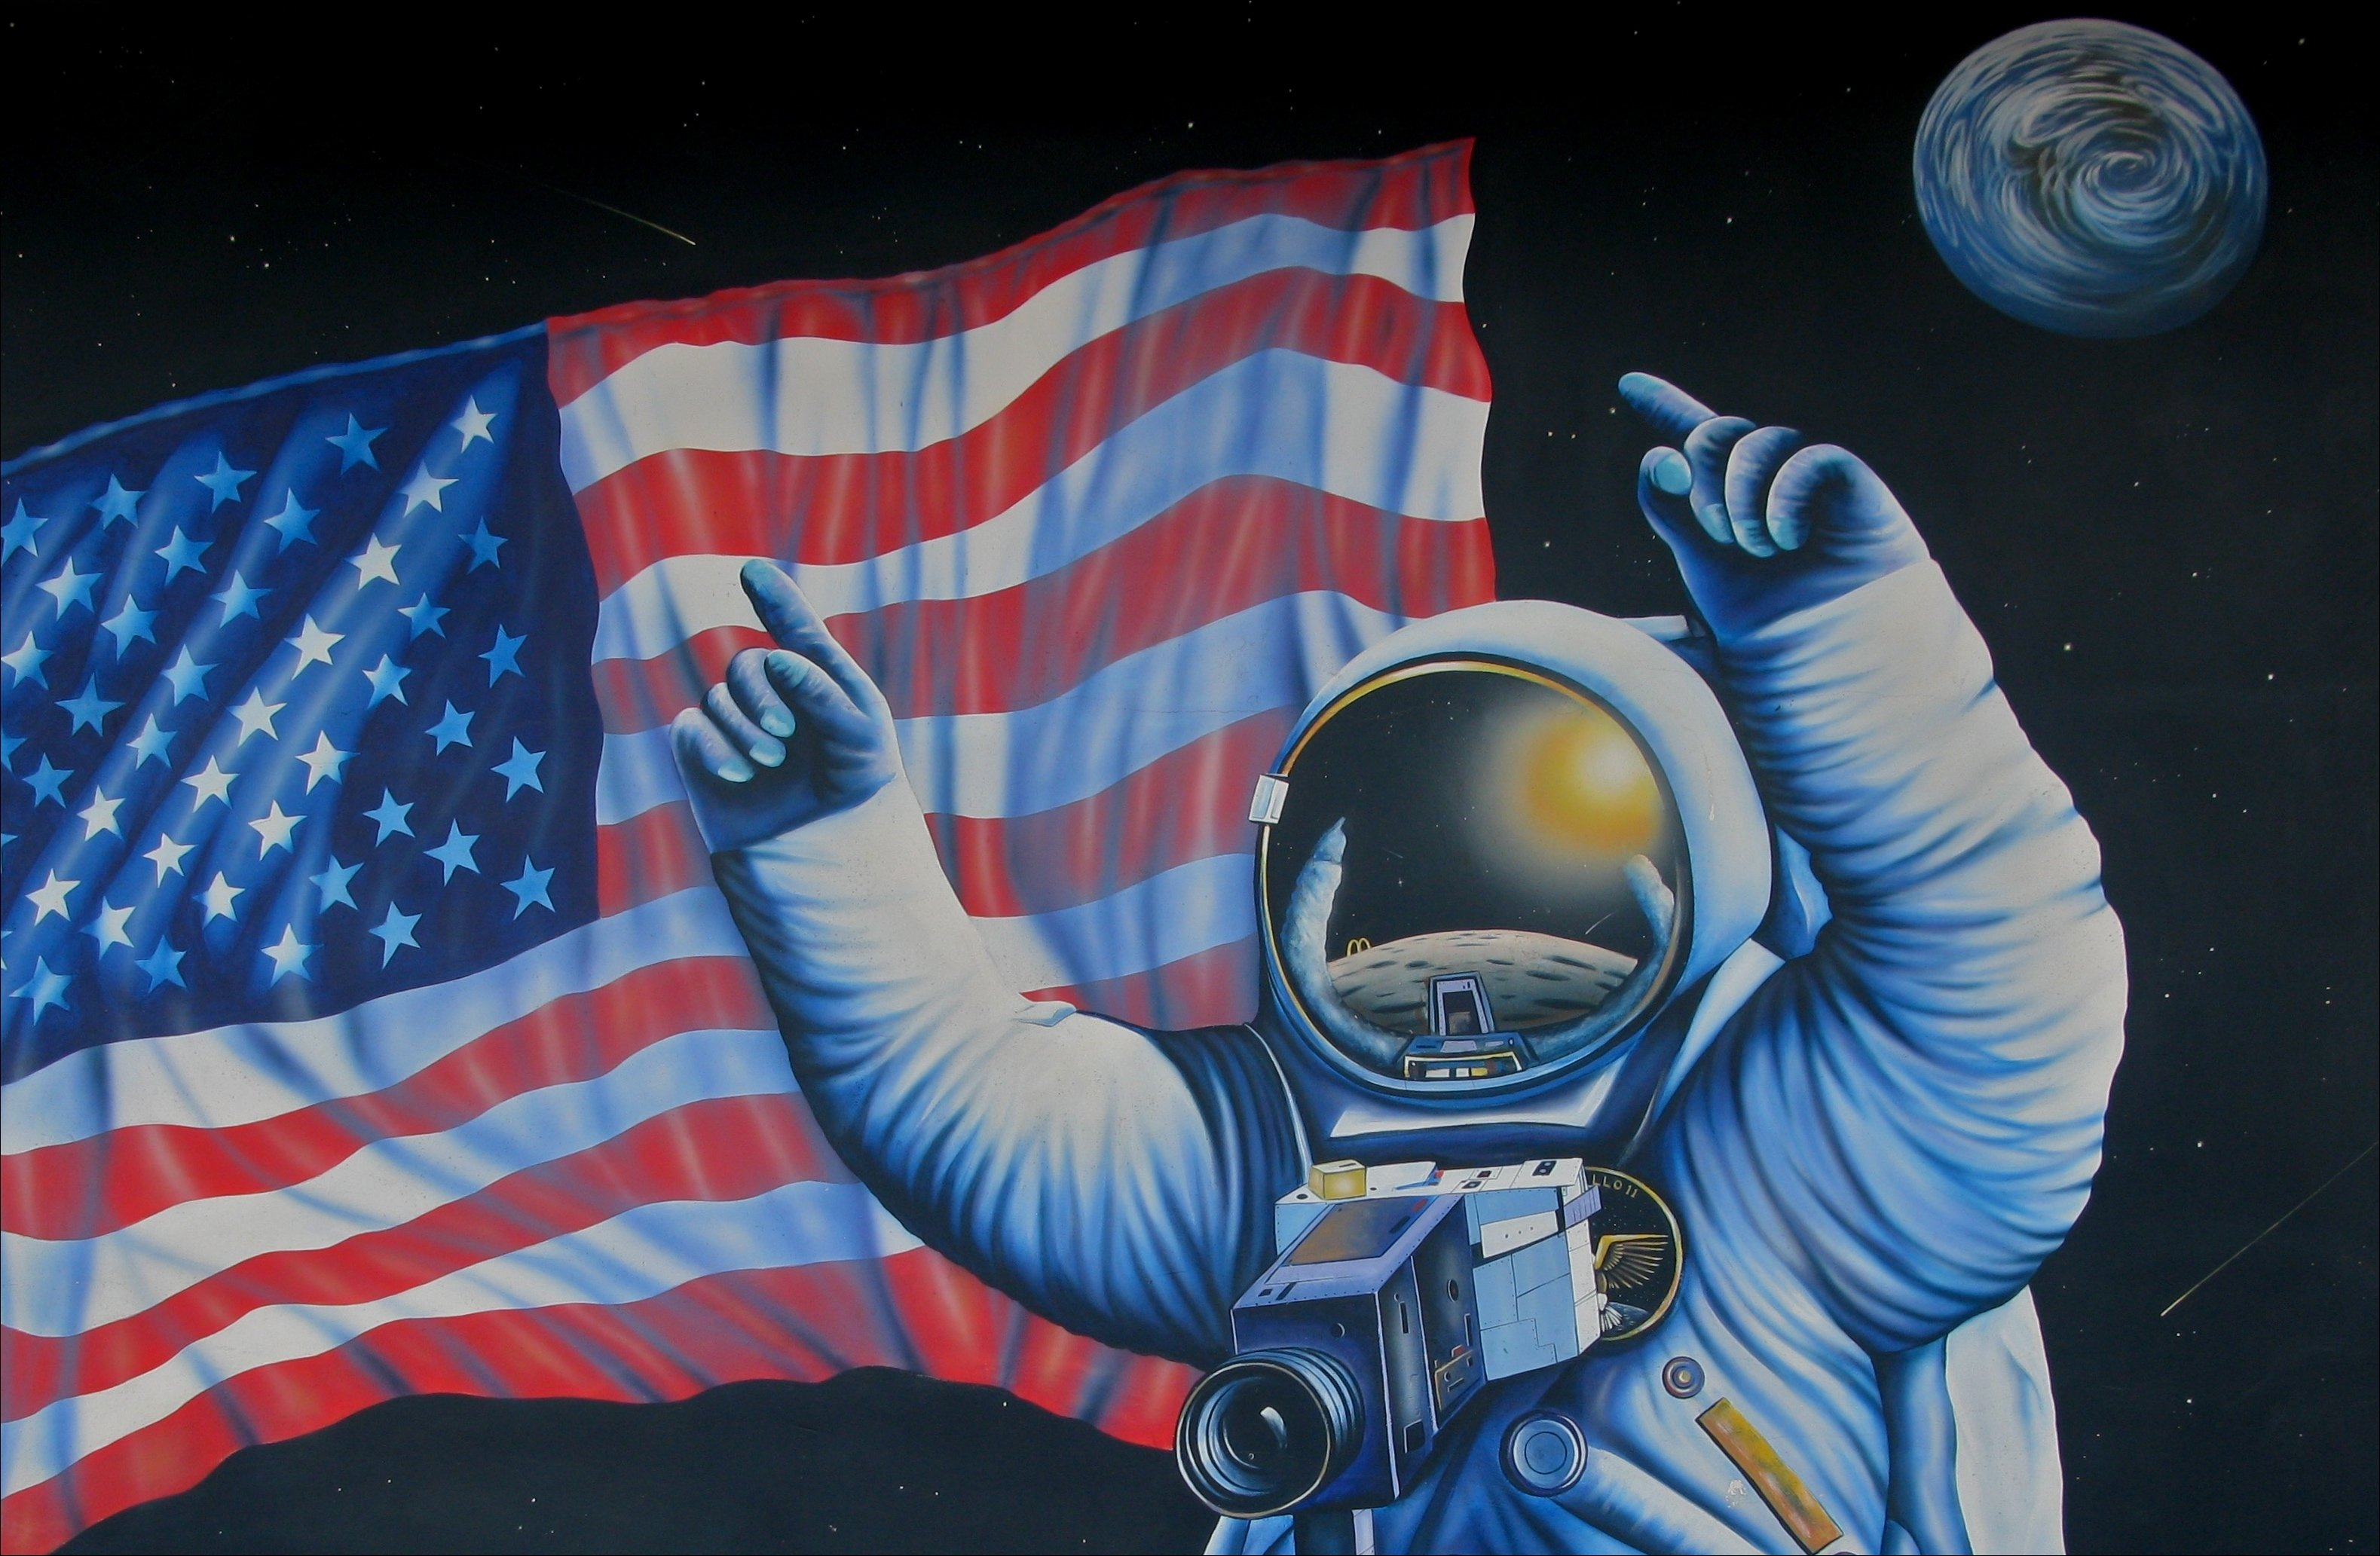 astronaut in space painting - photo #20